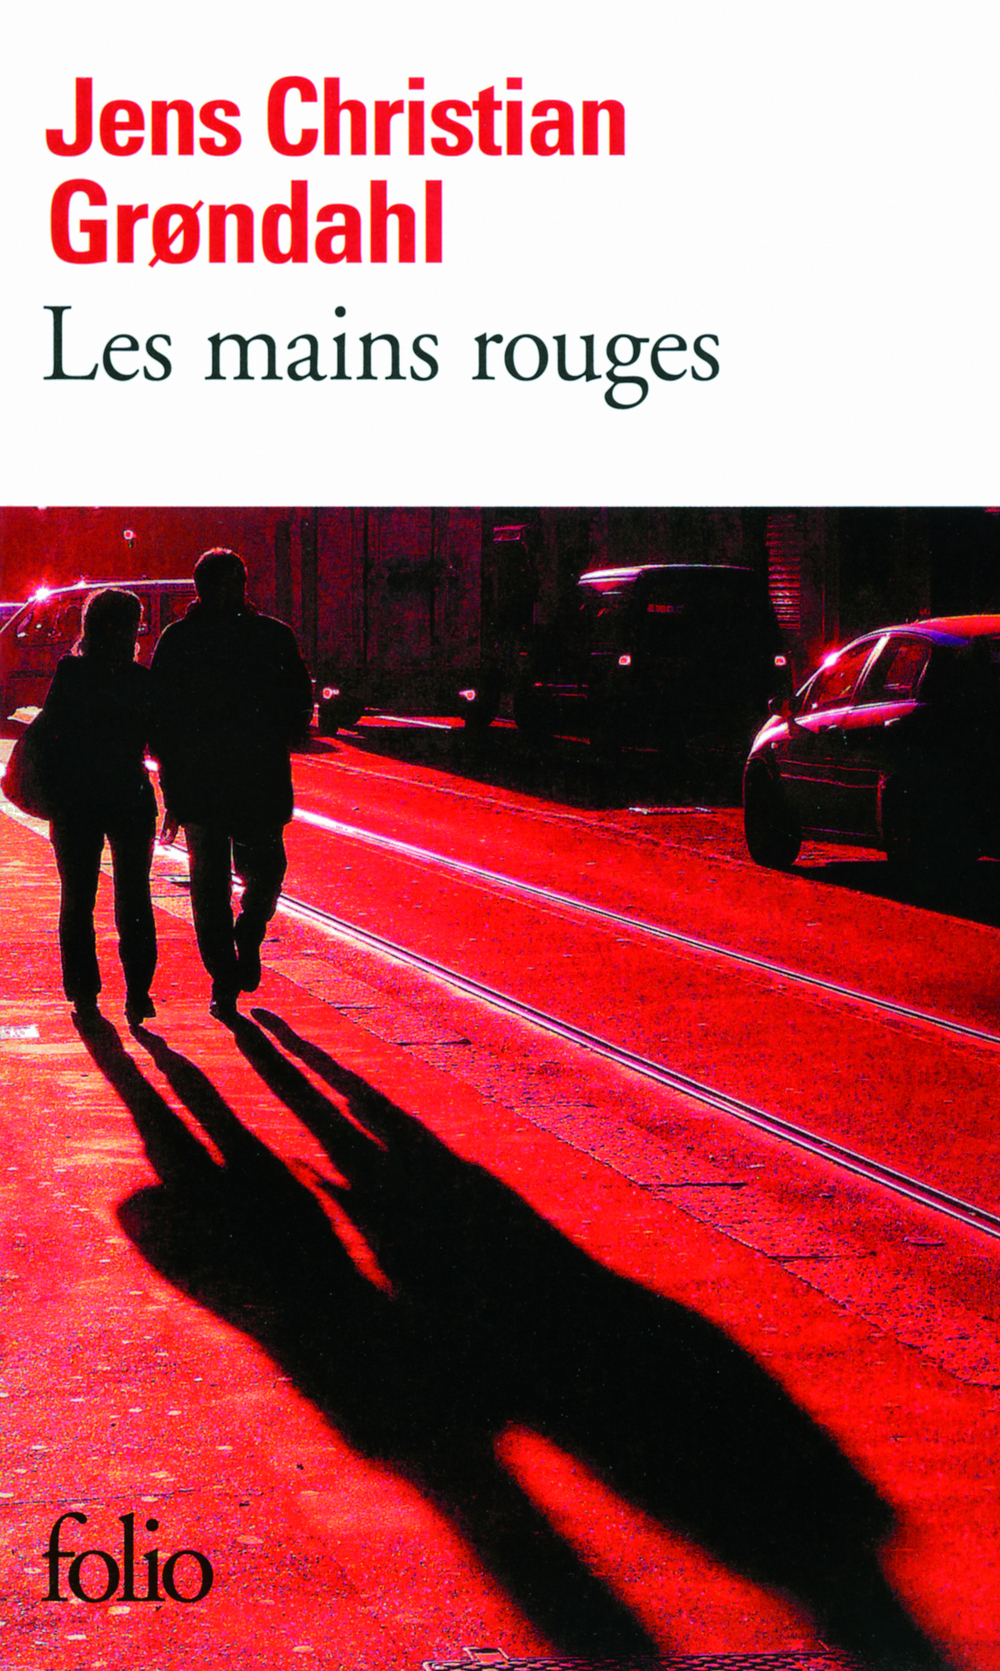 Les mains rouges